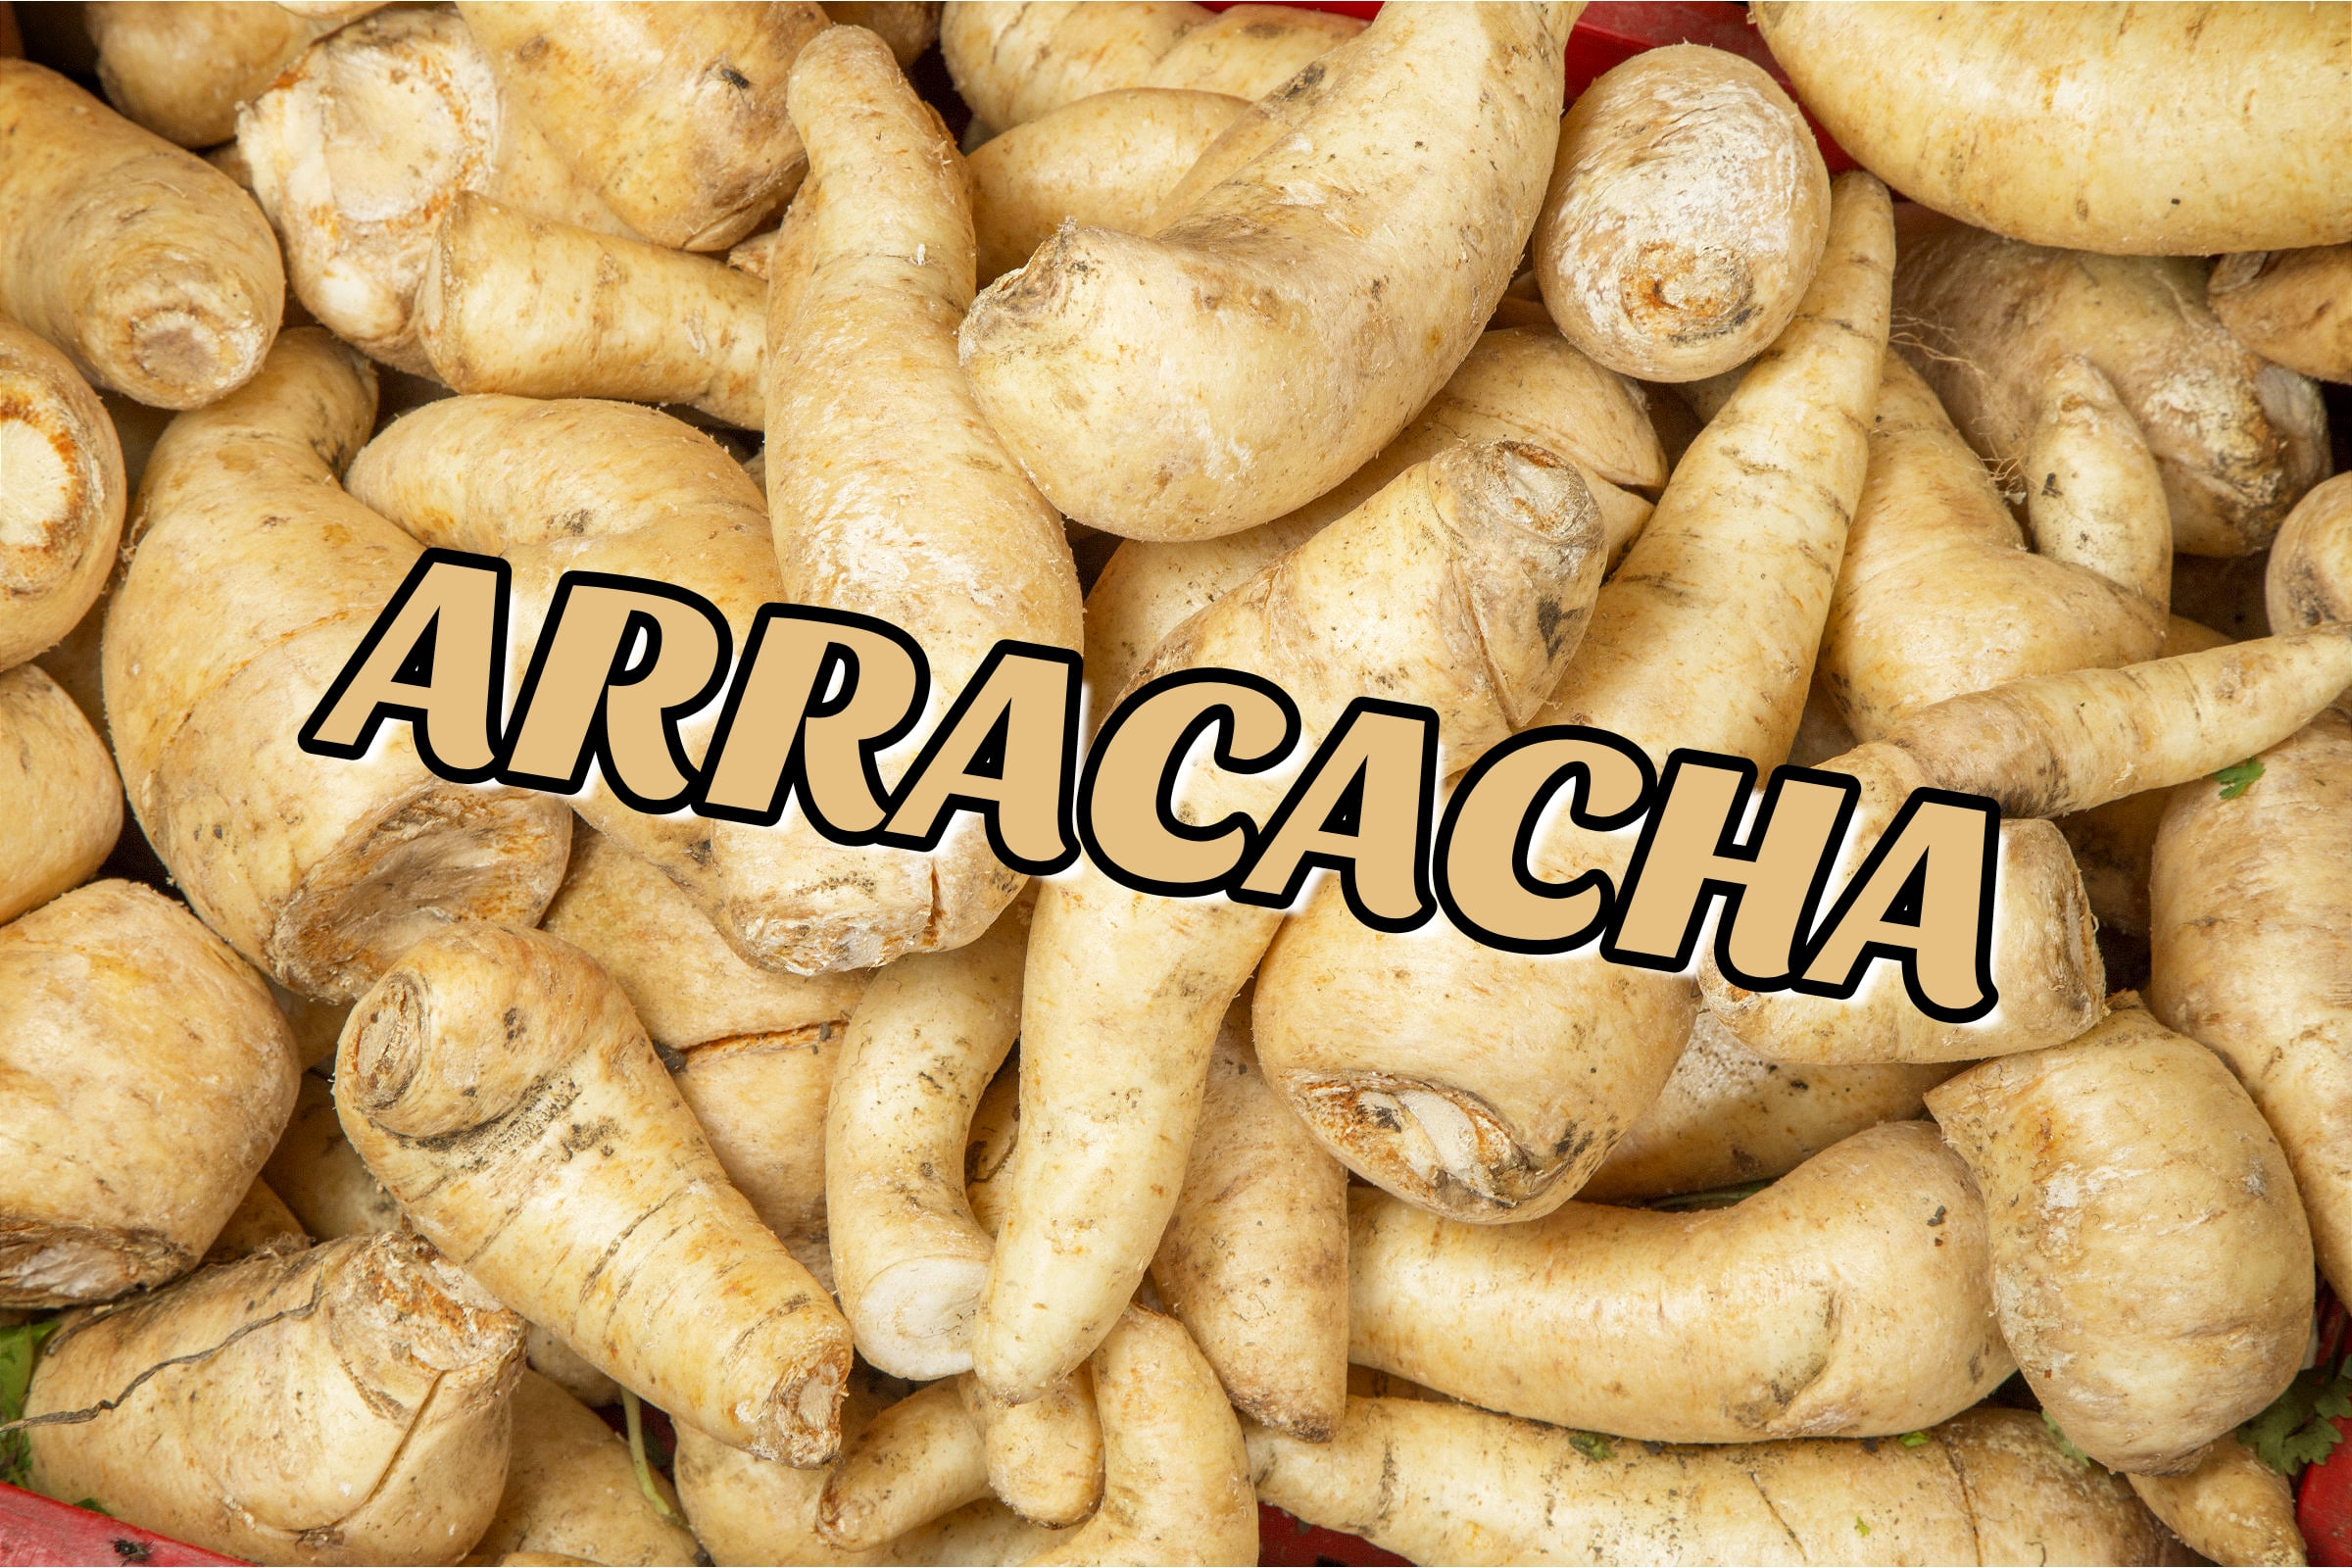 What Is The Arracacha Plant?